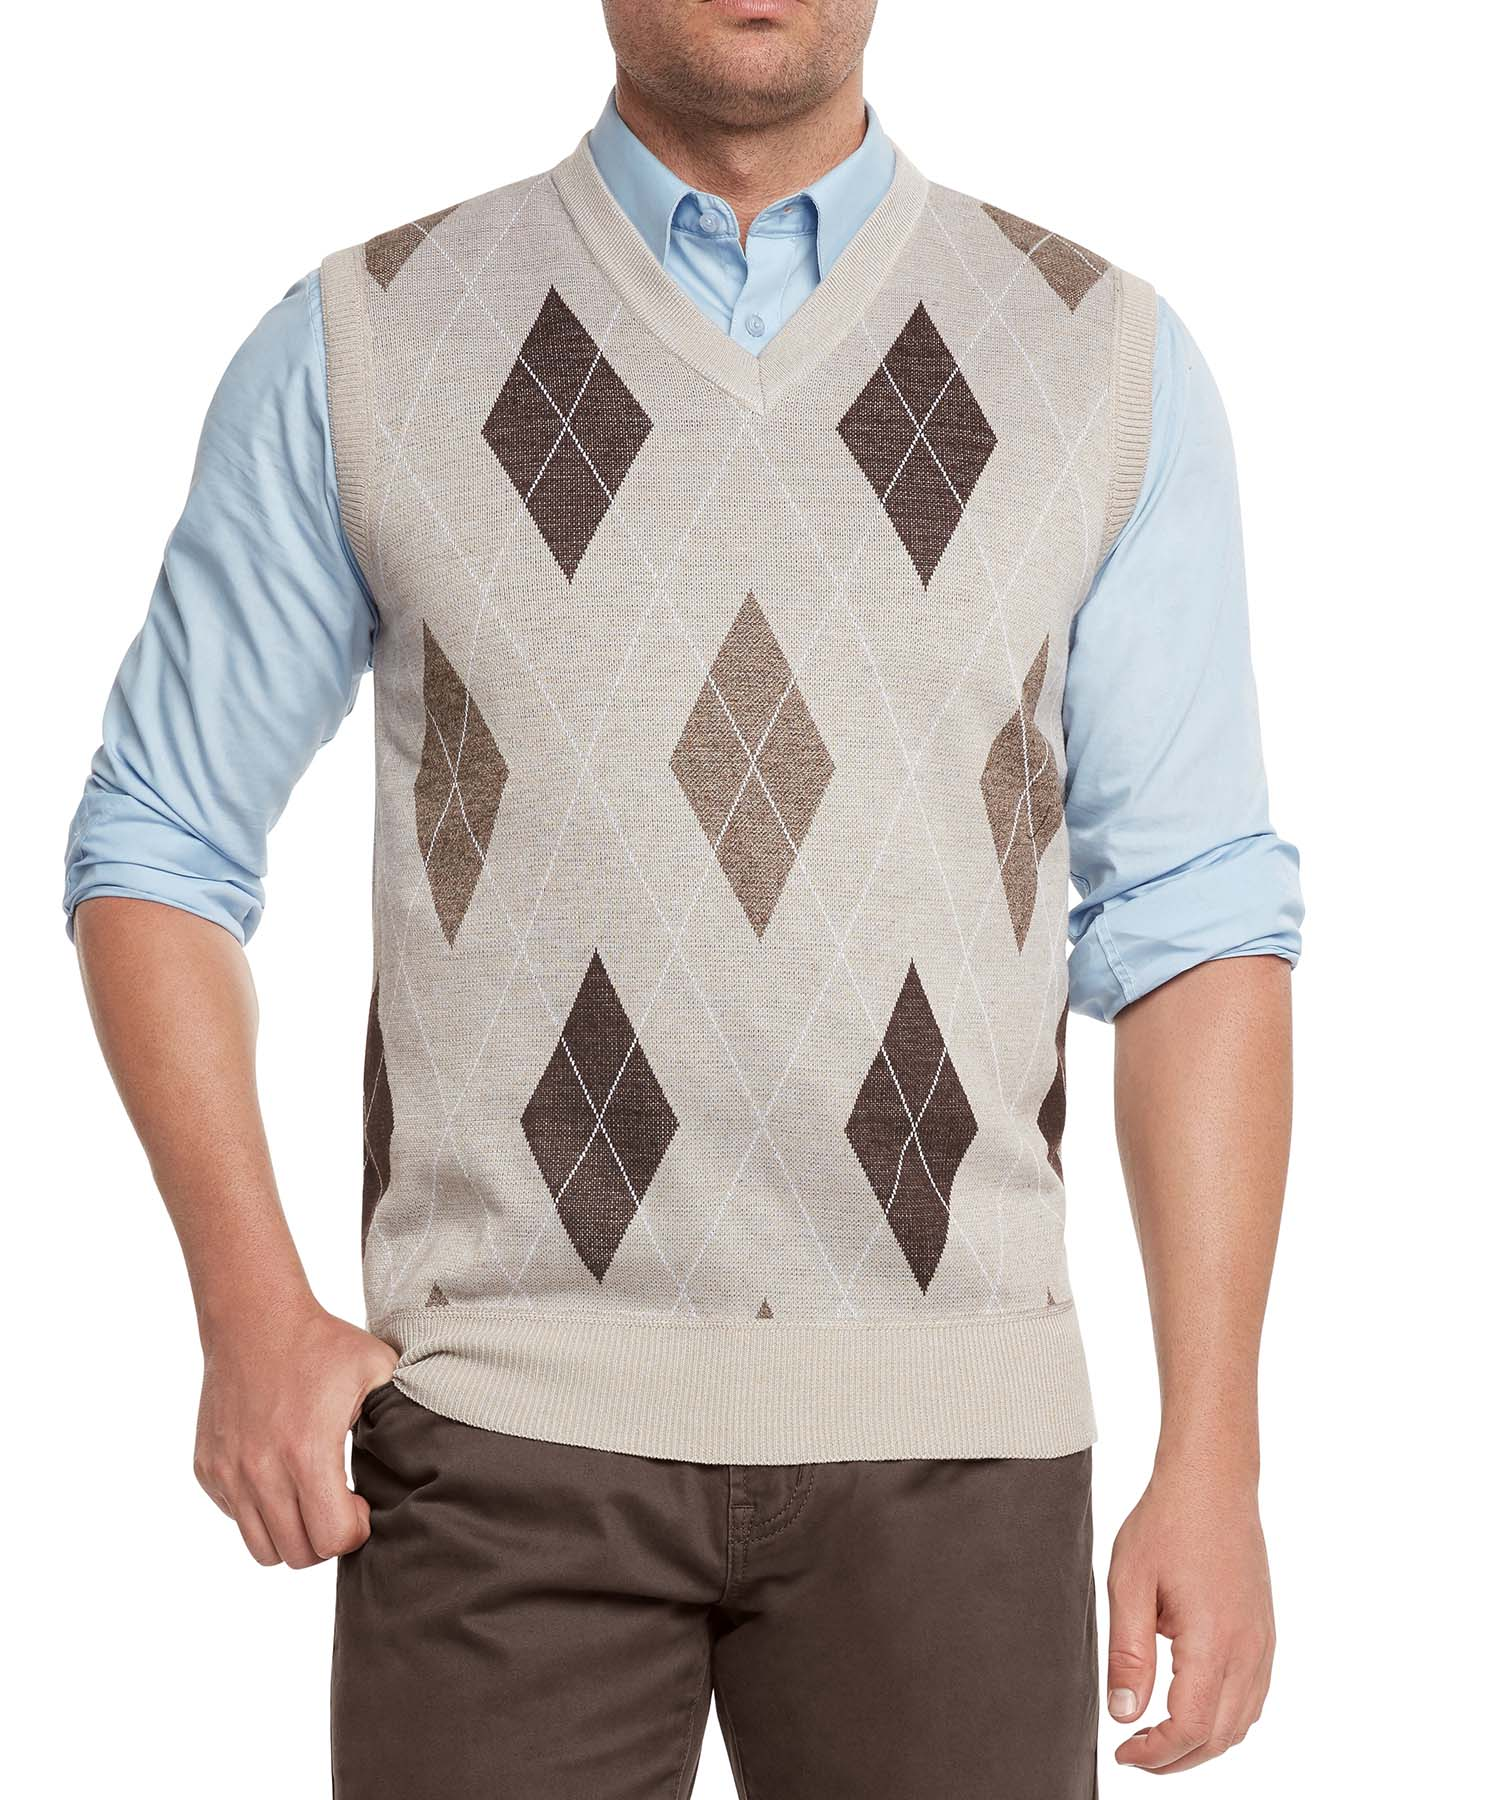 True Rock Men's Argyle V-Neck Sweater Vest | eBay